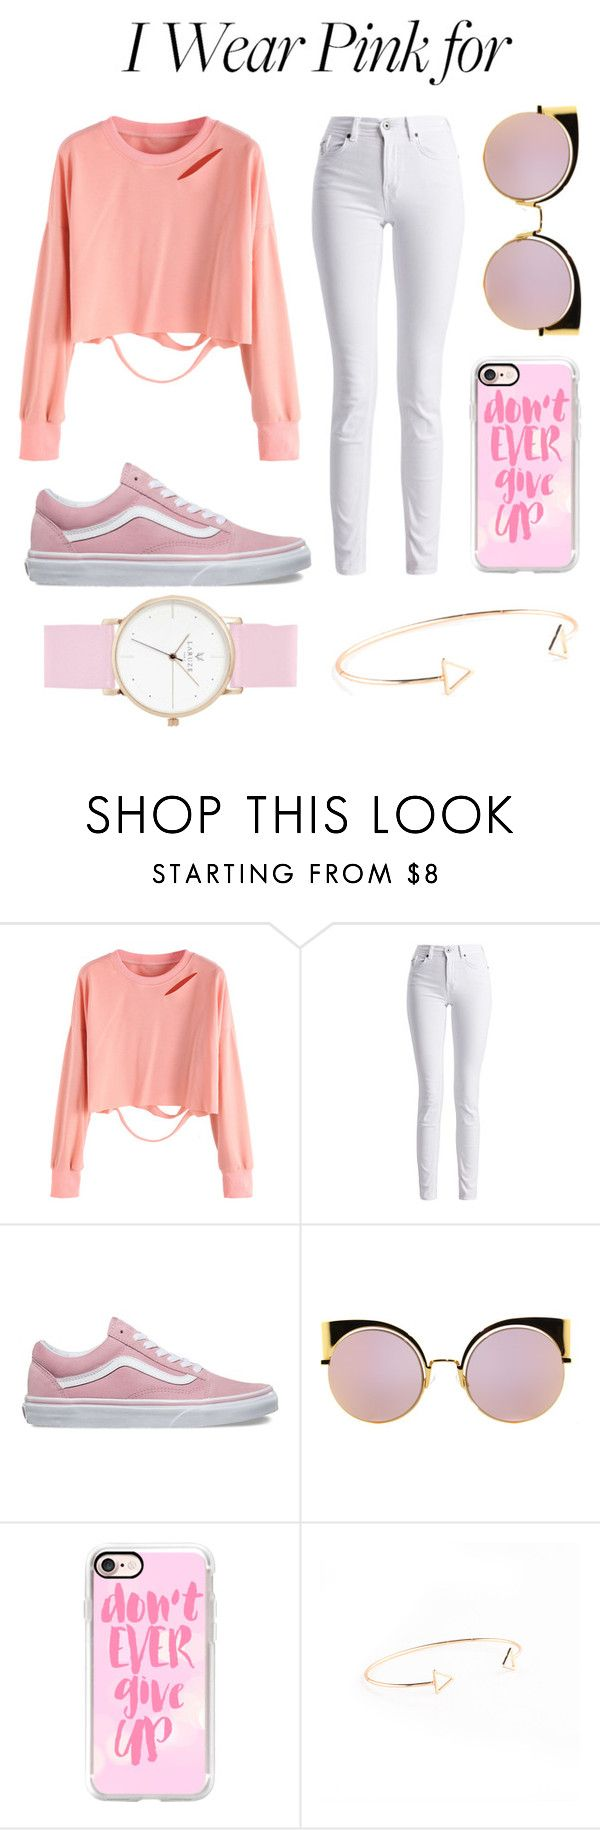 """""""P I N K F O R C A N C E R"""" by thatgirlangie ❤ liked on Polyvore featuring Barbour International, Vans, Fendi, Casetify and IWearPinkFor"""